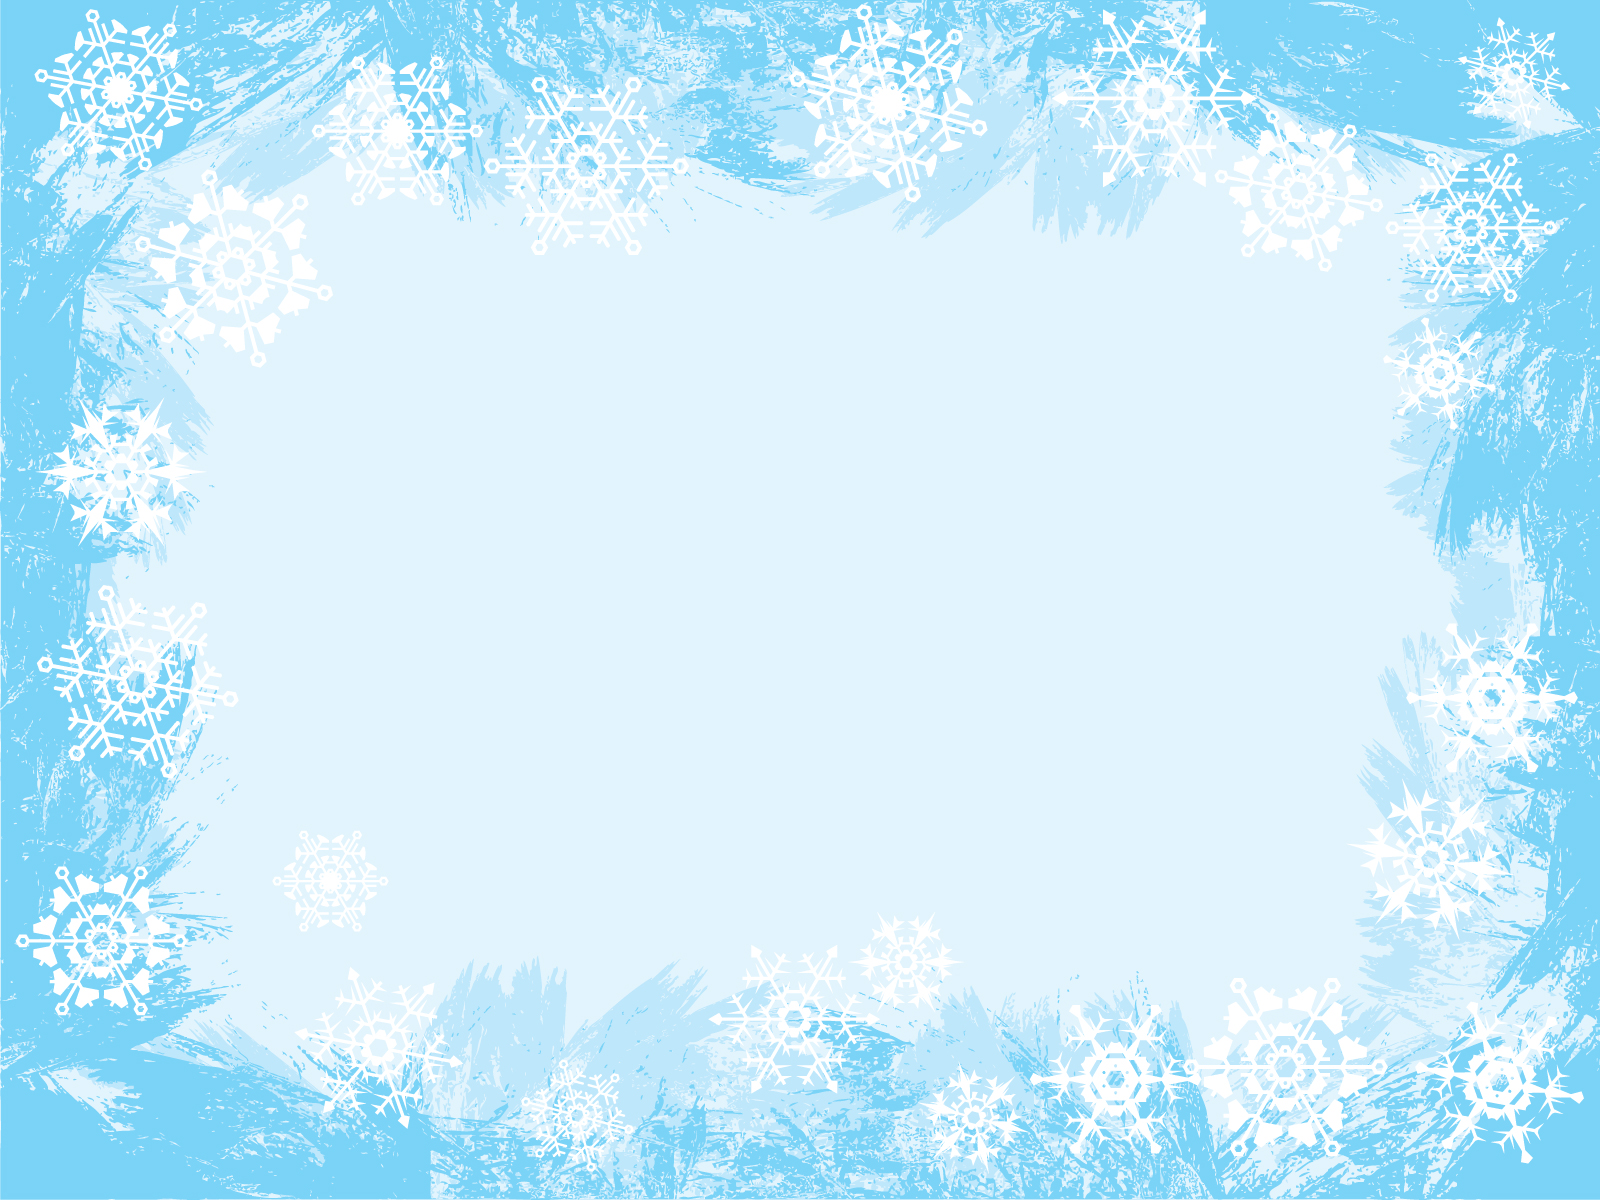 Light Blue Snowflake Frame Backgrounds Blue Border